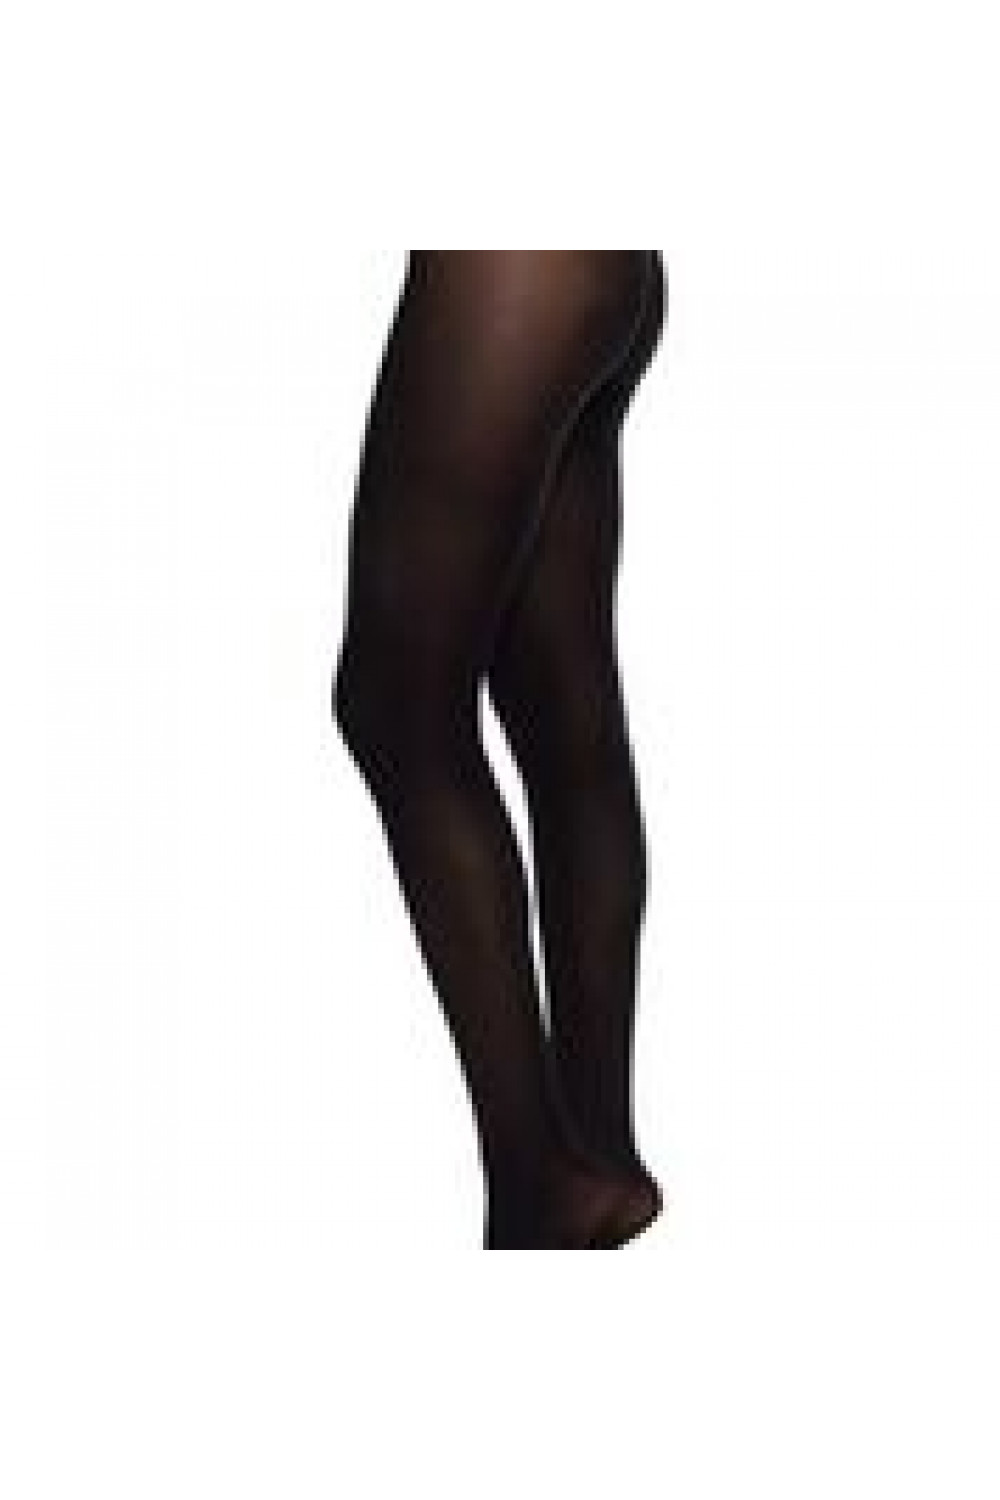 Hanna premium seamless - strumpbyxa, 40 den,  Swedish Stockings